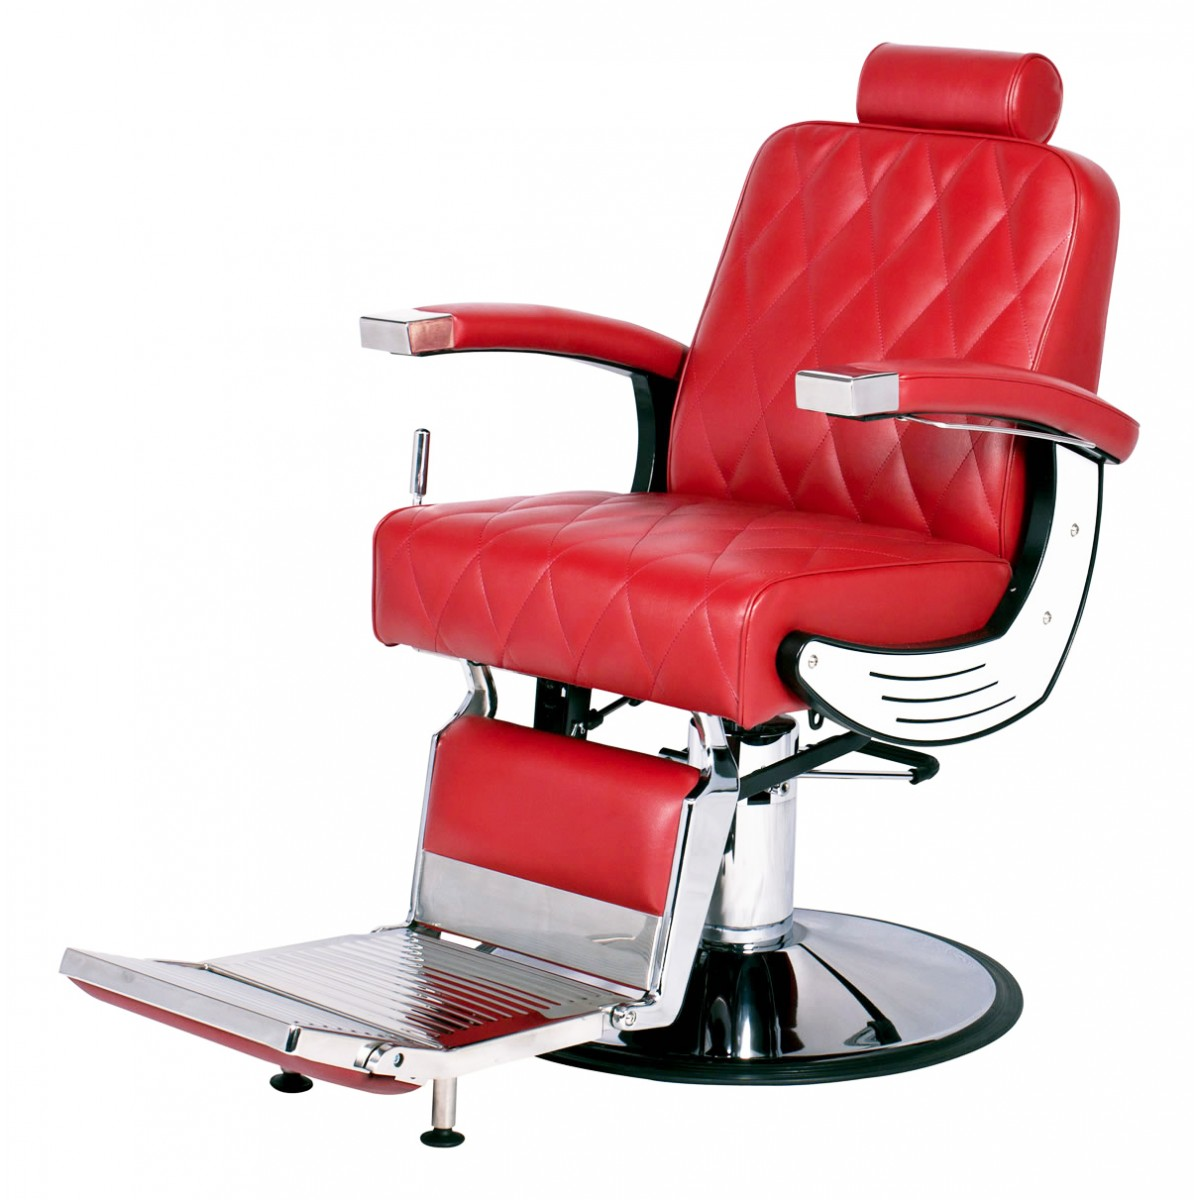 Barber Chairs Quotbaron Quot Heavy Duty Barber Chair Barber Shop Chairs